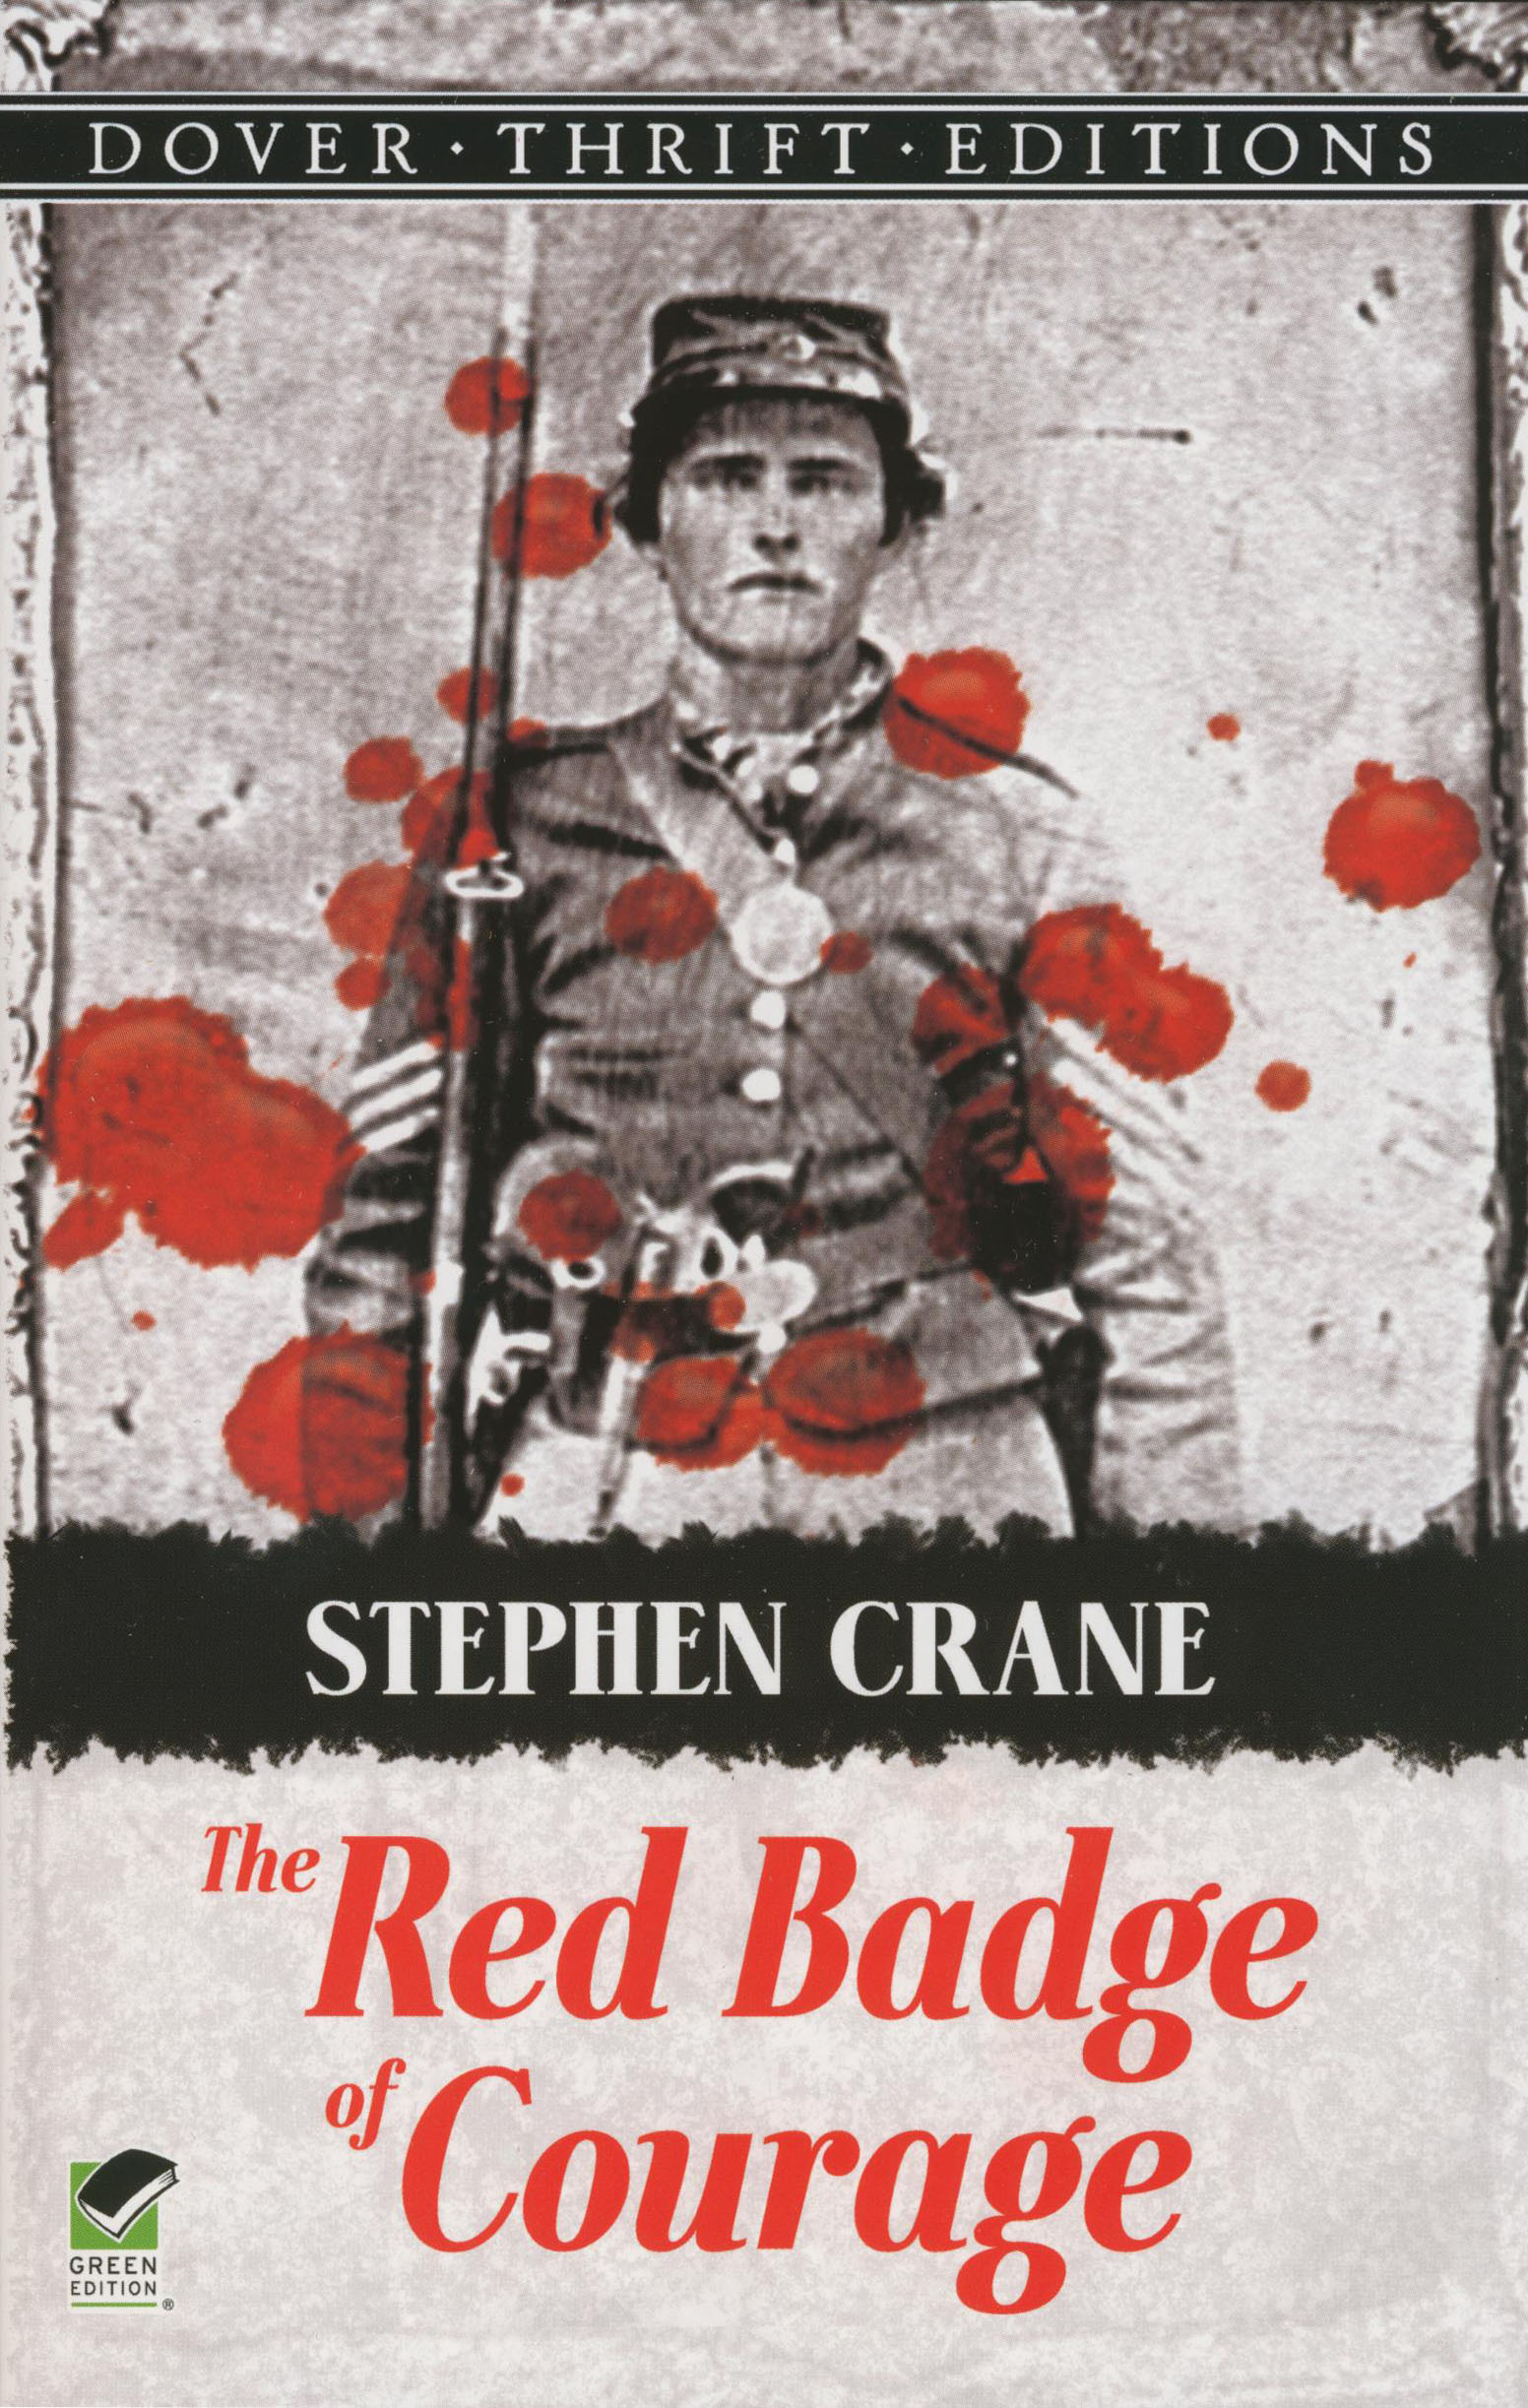 an analysis of henry fleming in the red badge of courage Throughout the novel the red badge of courage, henry fleming goes through many psychological chances, each having a distinct impact on henry fleming in red badge of courage the civil war forced many young boys out of childhood and into adulthood.